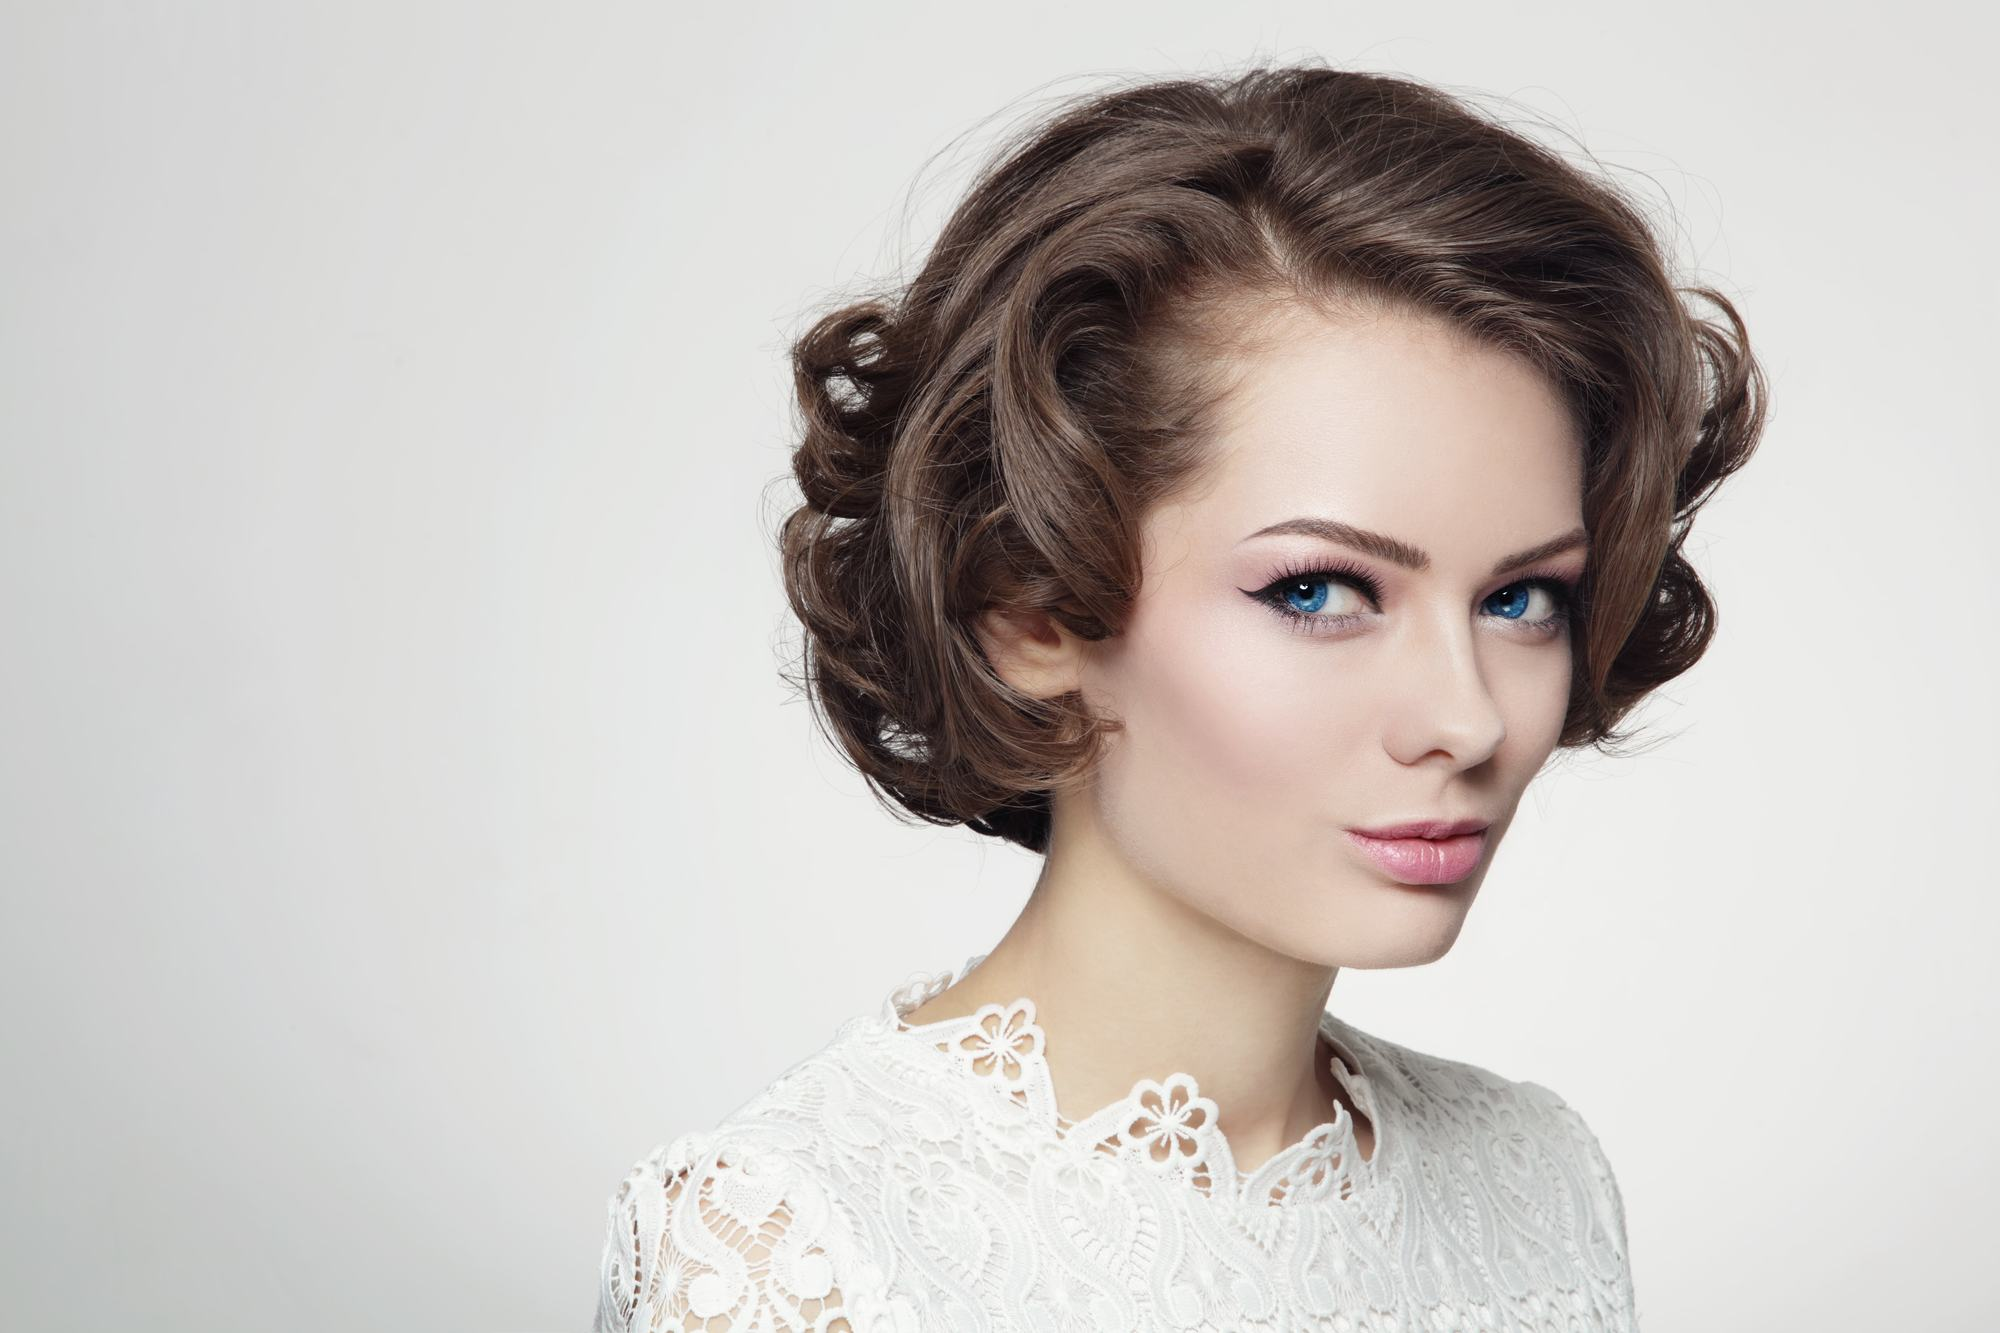 Vintage 60s Hairstyles How to ReCreate 2 Iconic Styles